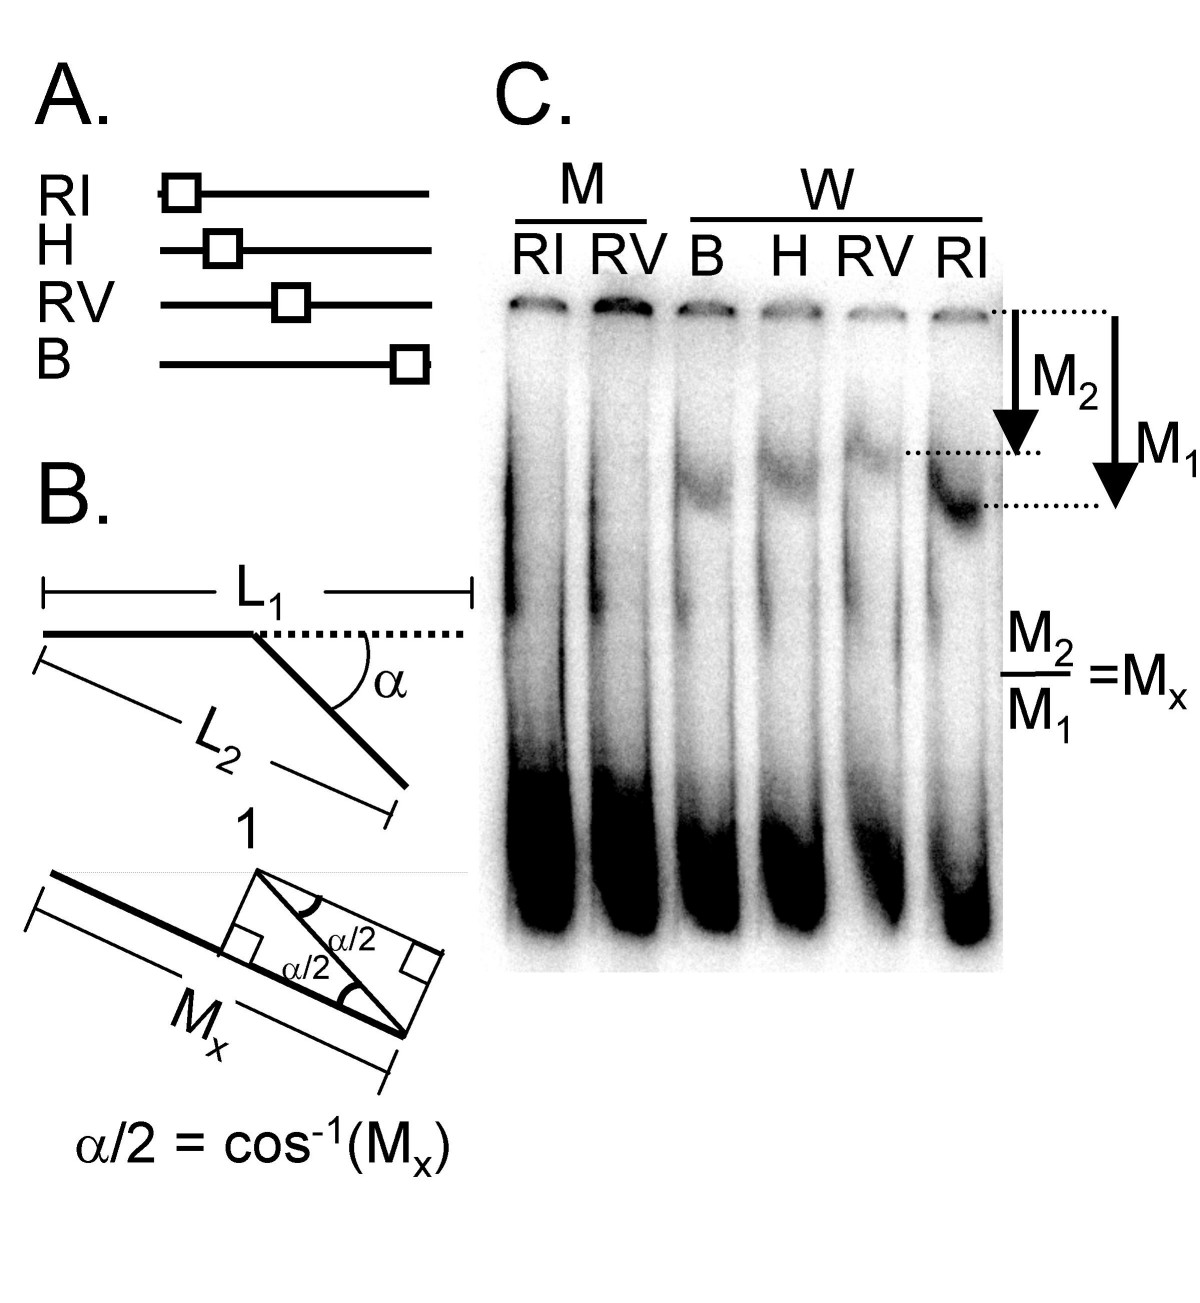 http://static-content.springer.com/image/art%3A10.1186%2F1471-2180-7-44/MediaObjects/12866_2006_Article_361_Fig6_HTML.jpg